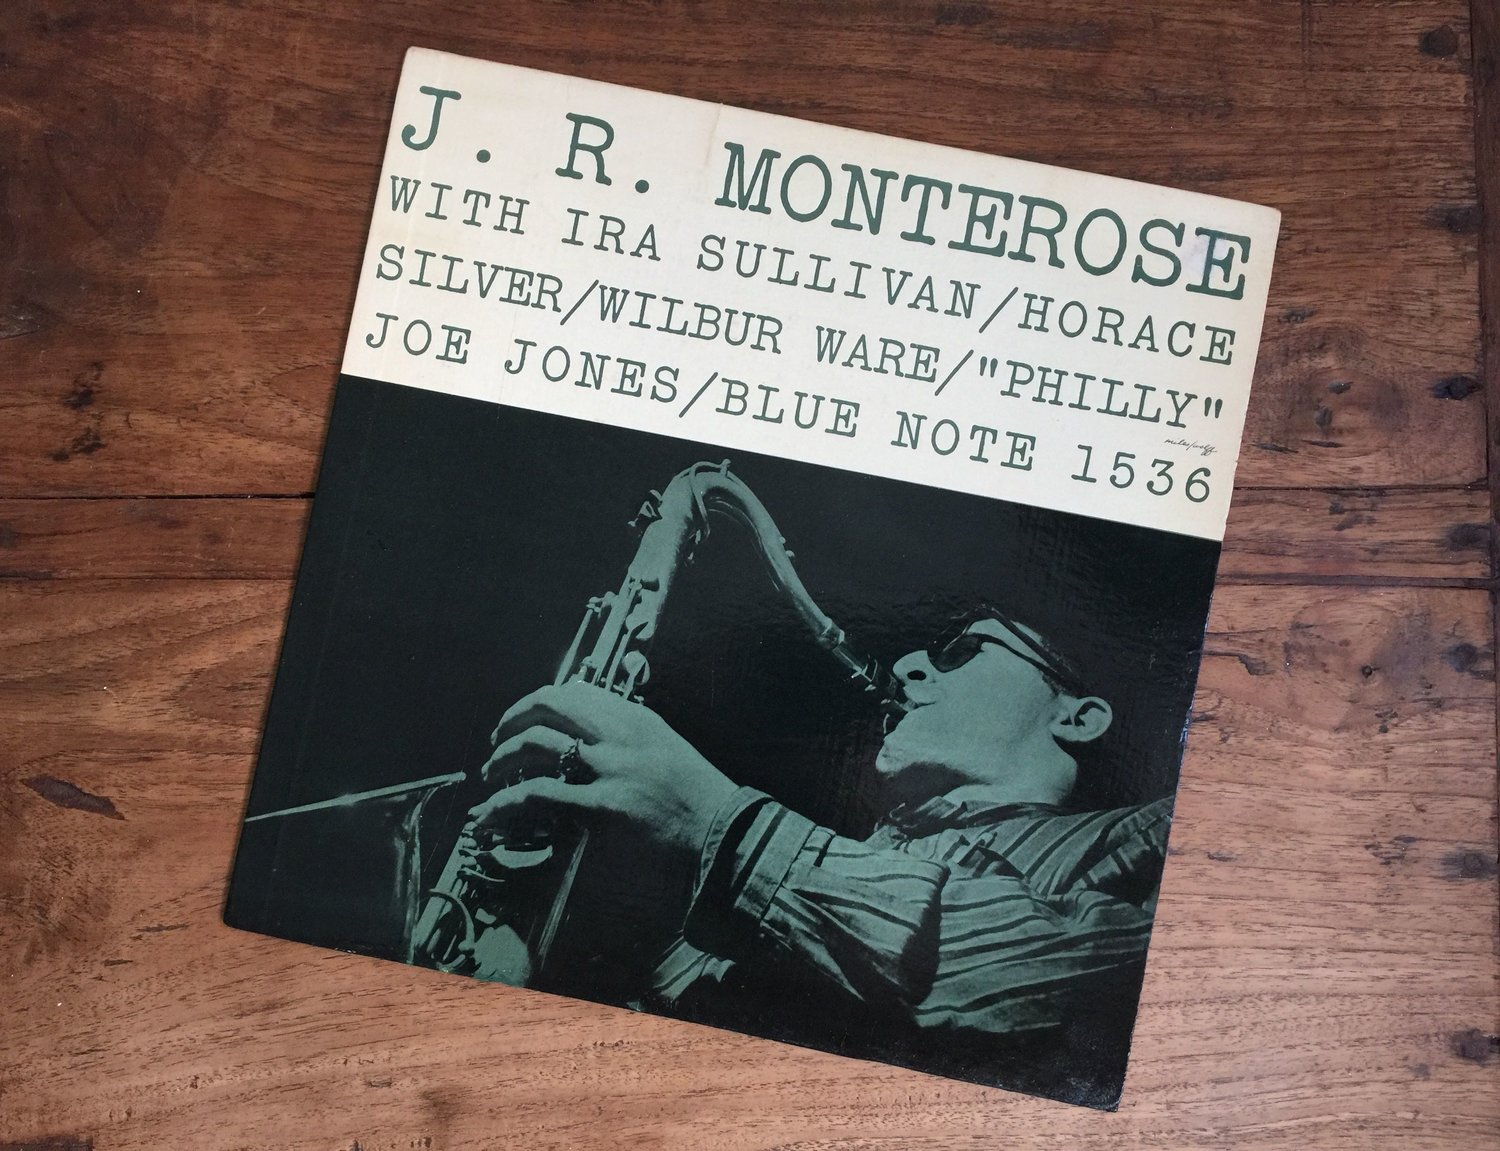 J.R. Monterose on Blue Note 1536